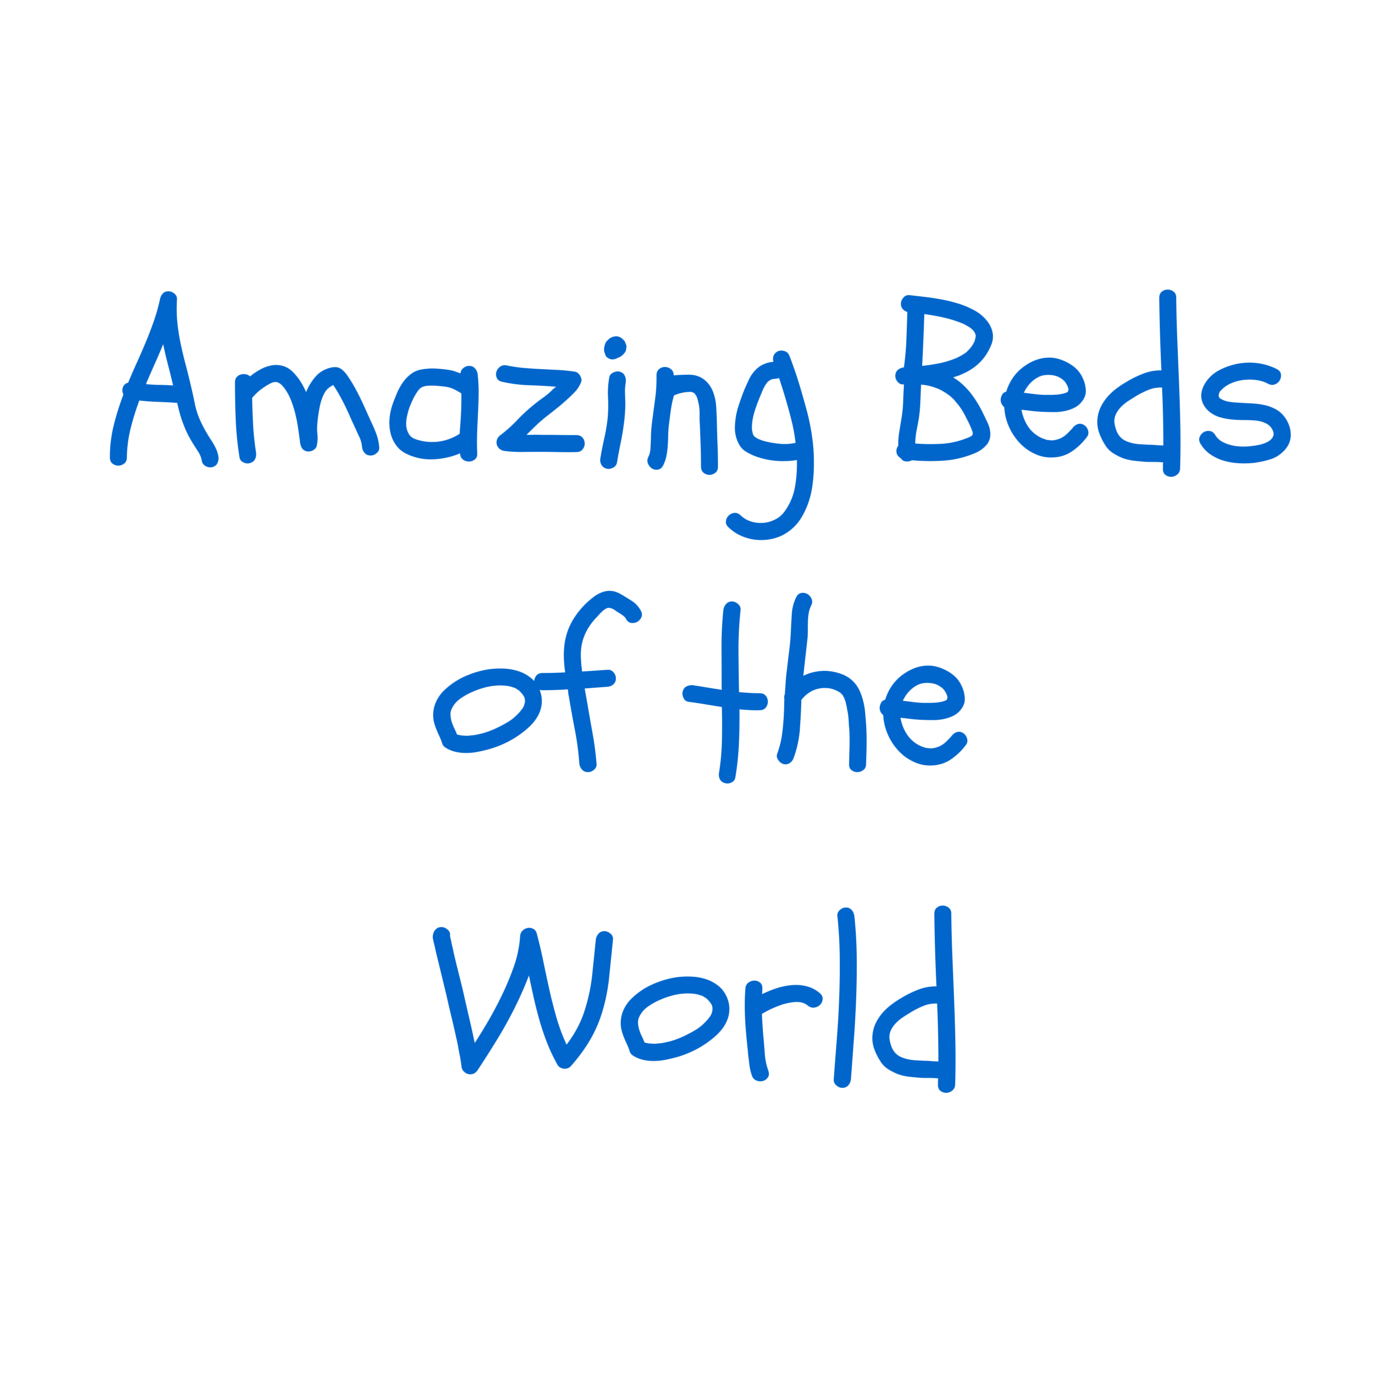 Amazing Beds of the World Cool beds, Bed, Amazing